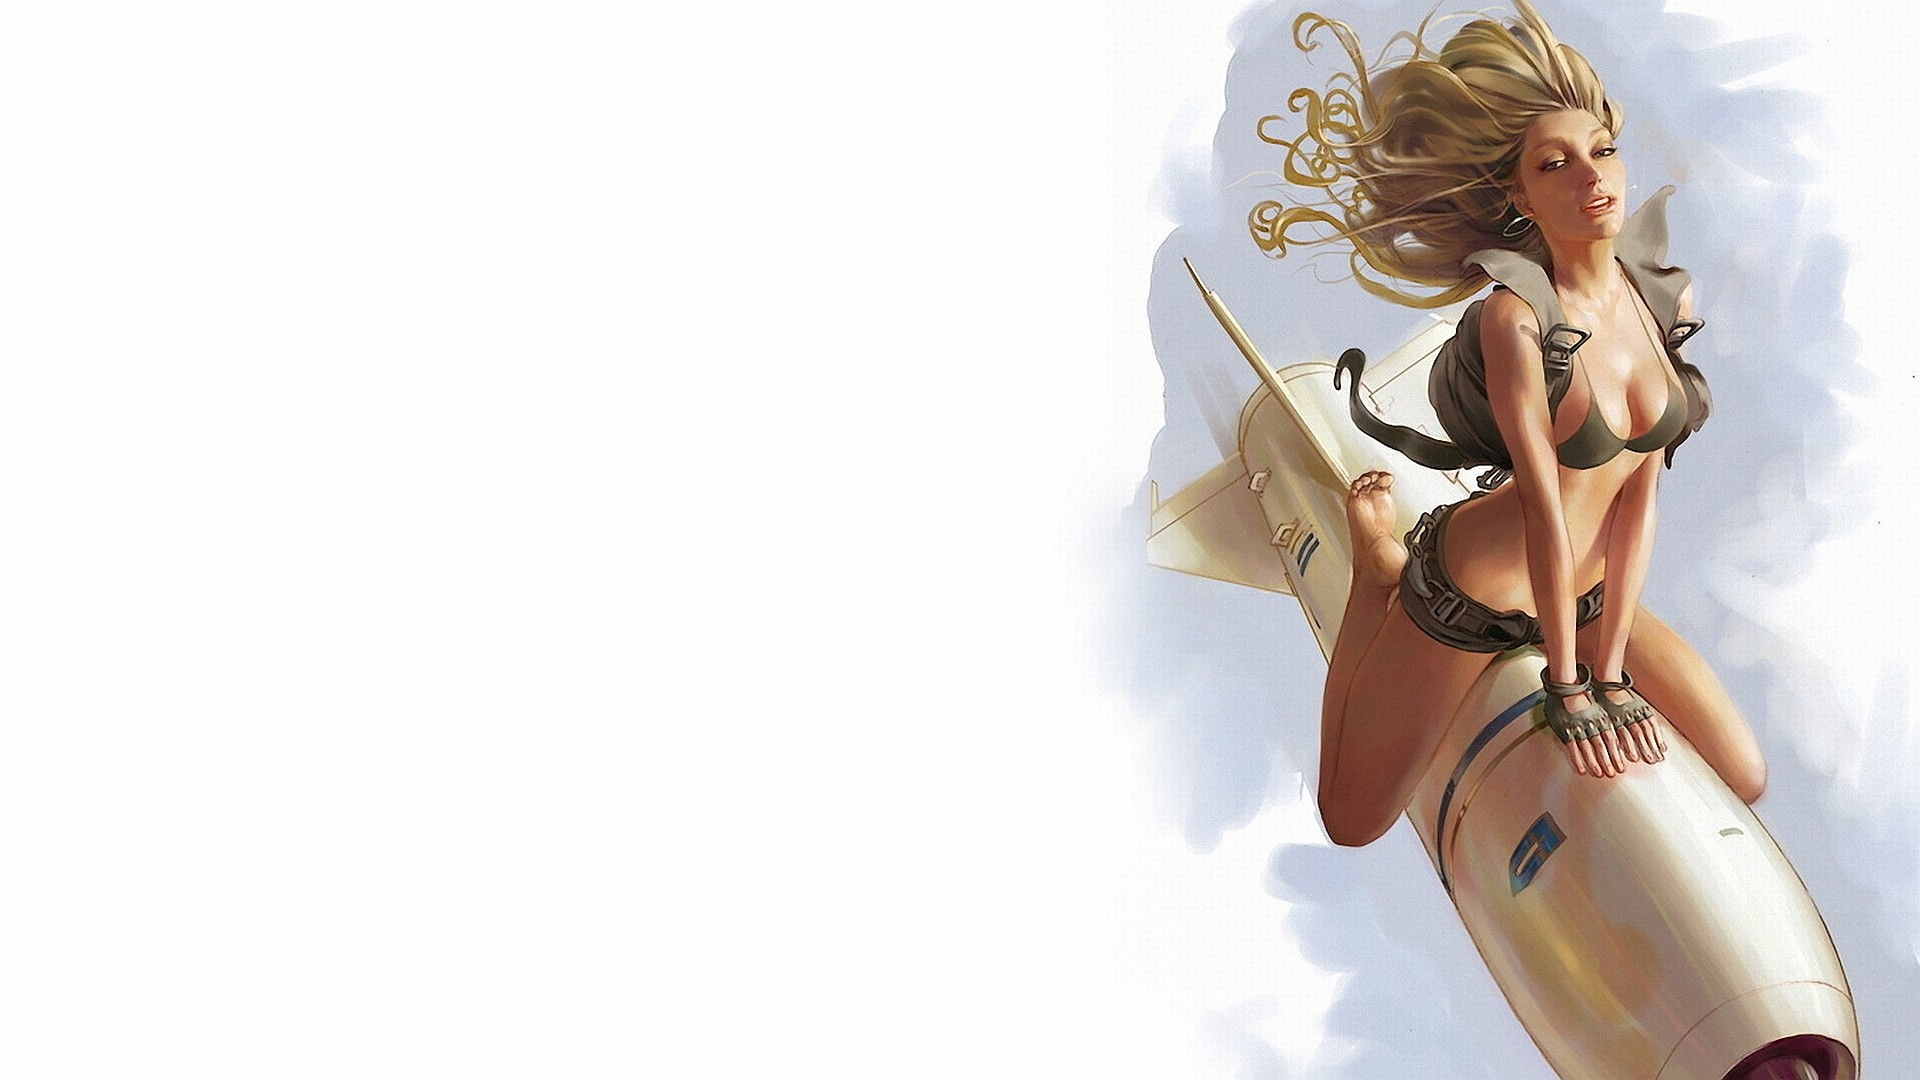 "1920x1080 Downloading ""pinup girl riding a rocket"" Wallpaper Background"